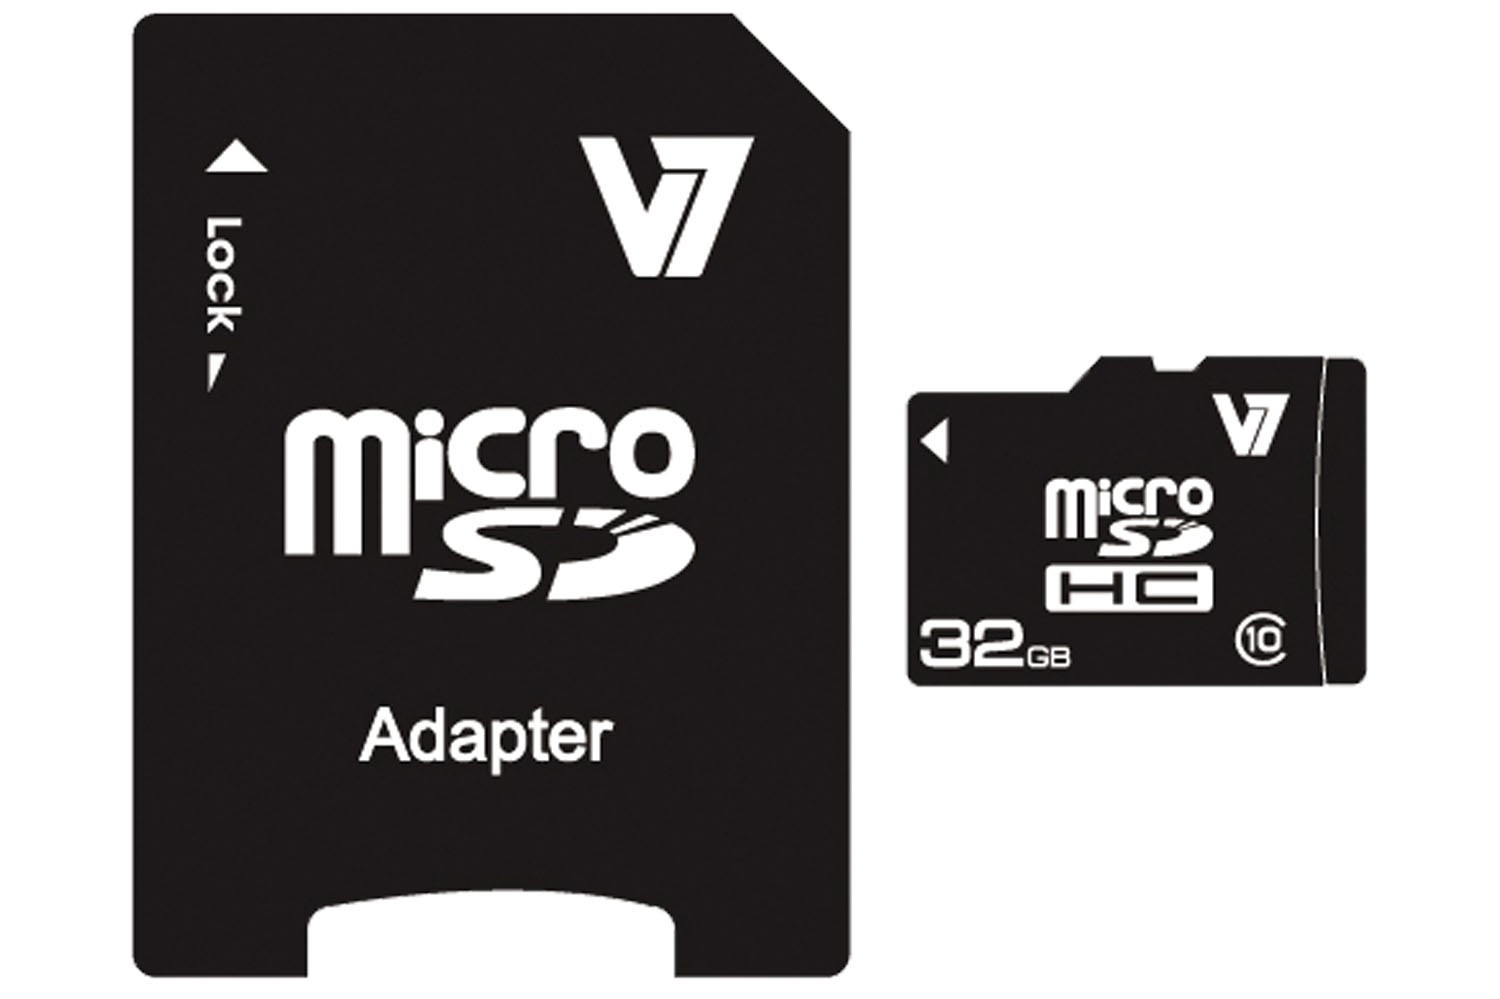 V7 VAMSDH32GCL10R-2E MICRO SDHC 32GB CLASS 10 + SD ADAPTER